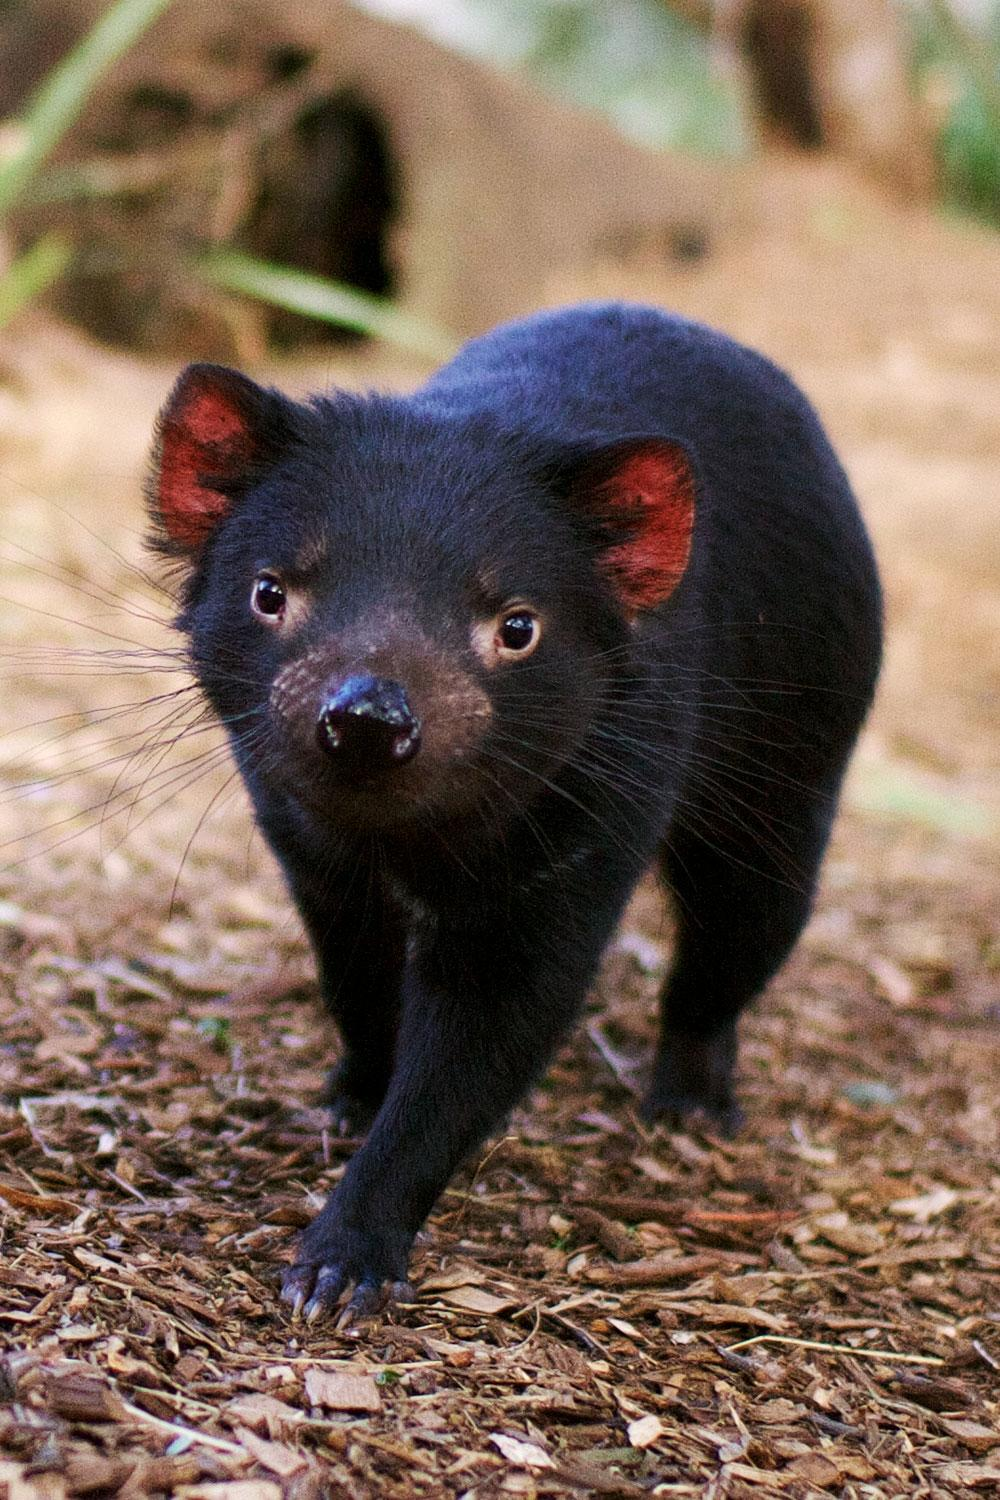 9 places where you can find an actual tasmanian devil fodors travel guide - Tasmanian devil pics ...